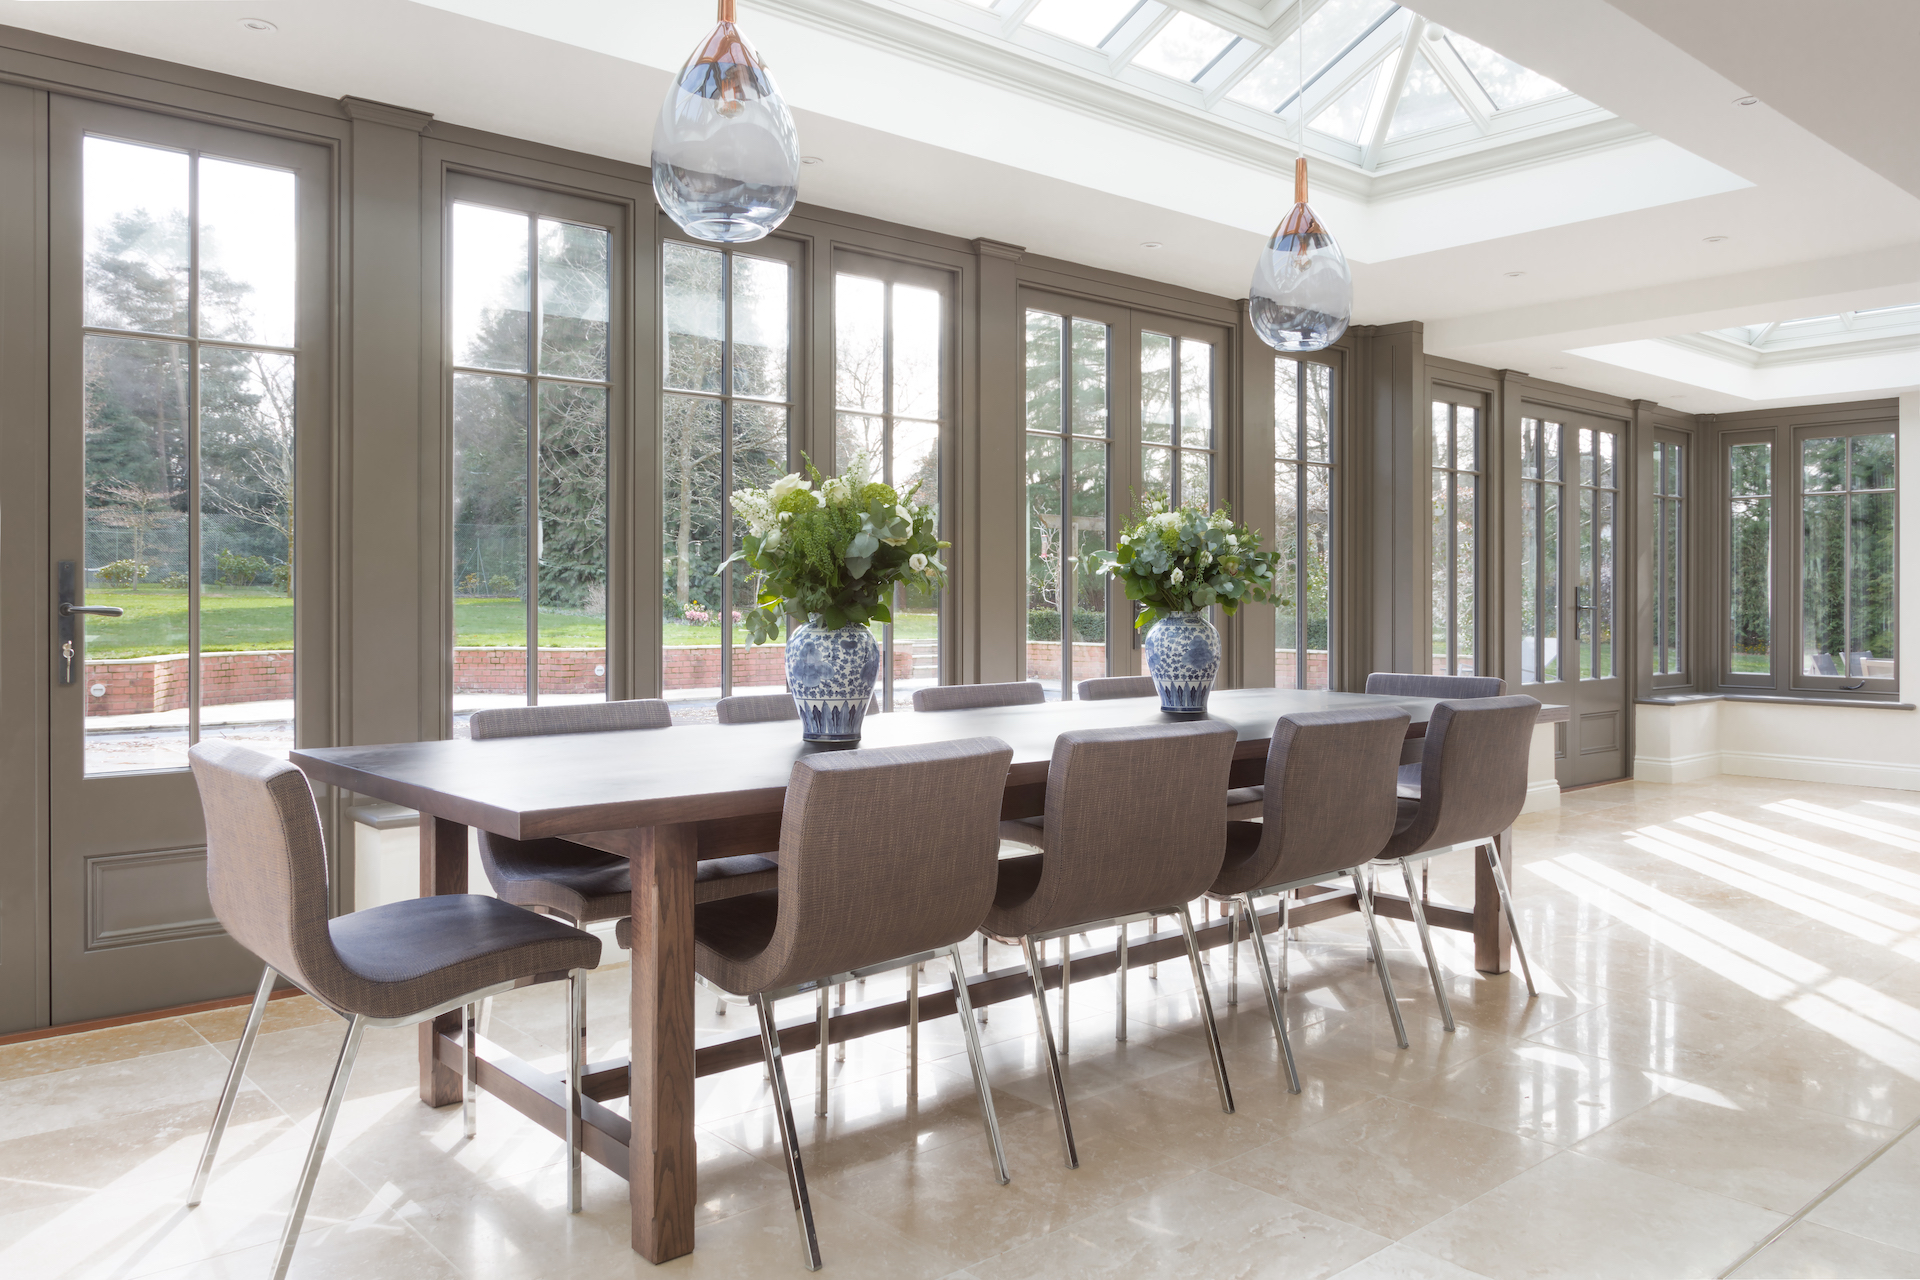 Planning An Extension With Westbury Garden Rooms - Humphrey Munson blog